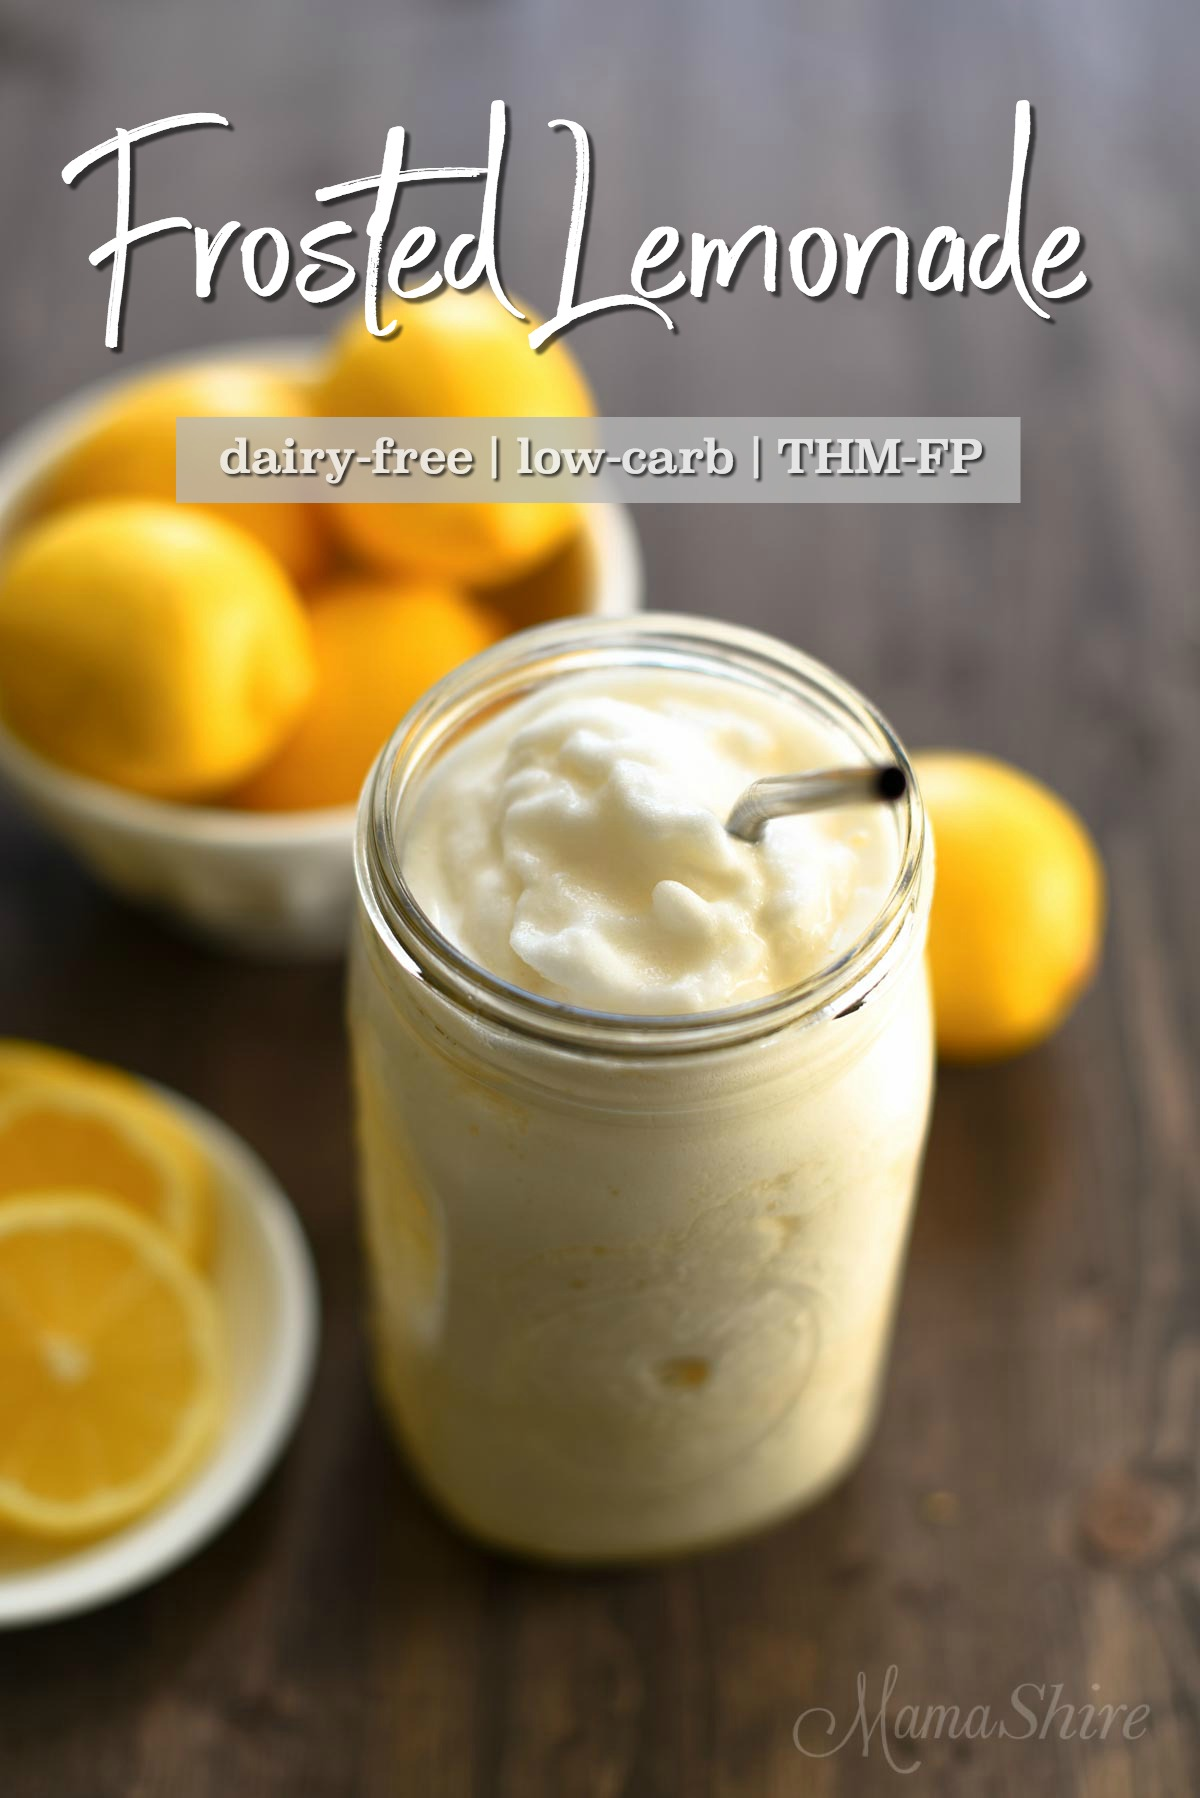 Frosted Lemonade - Copycat Chick-Fil-A